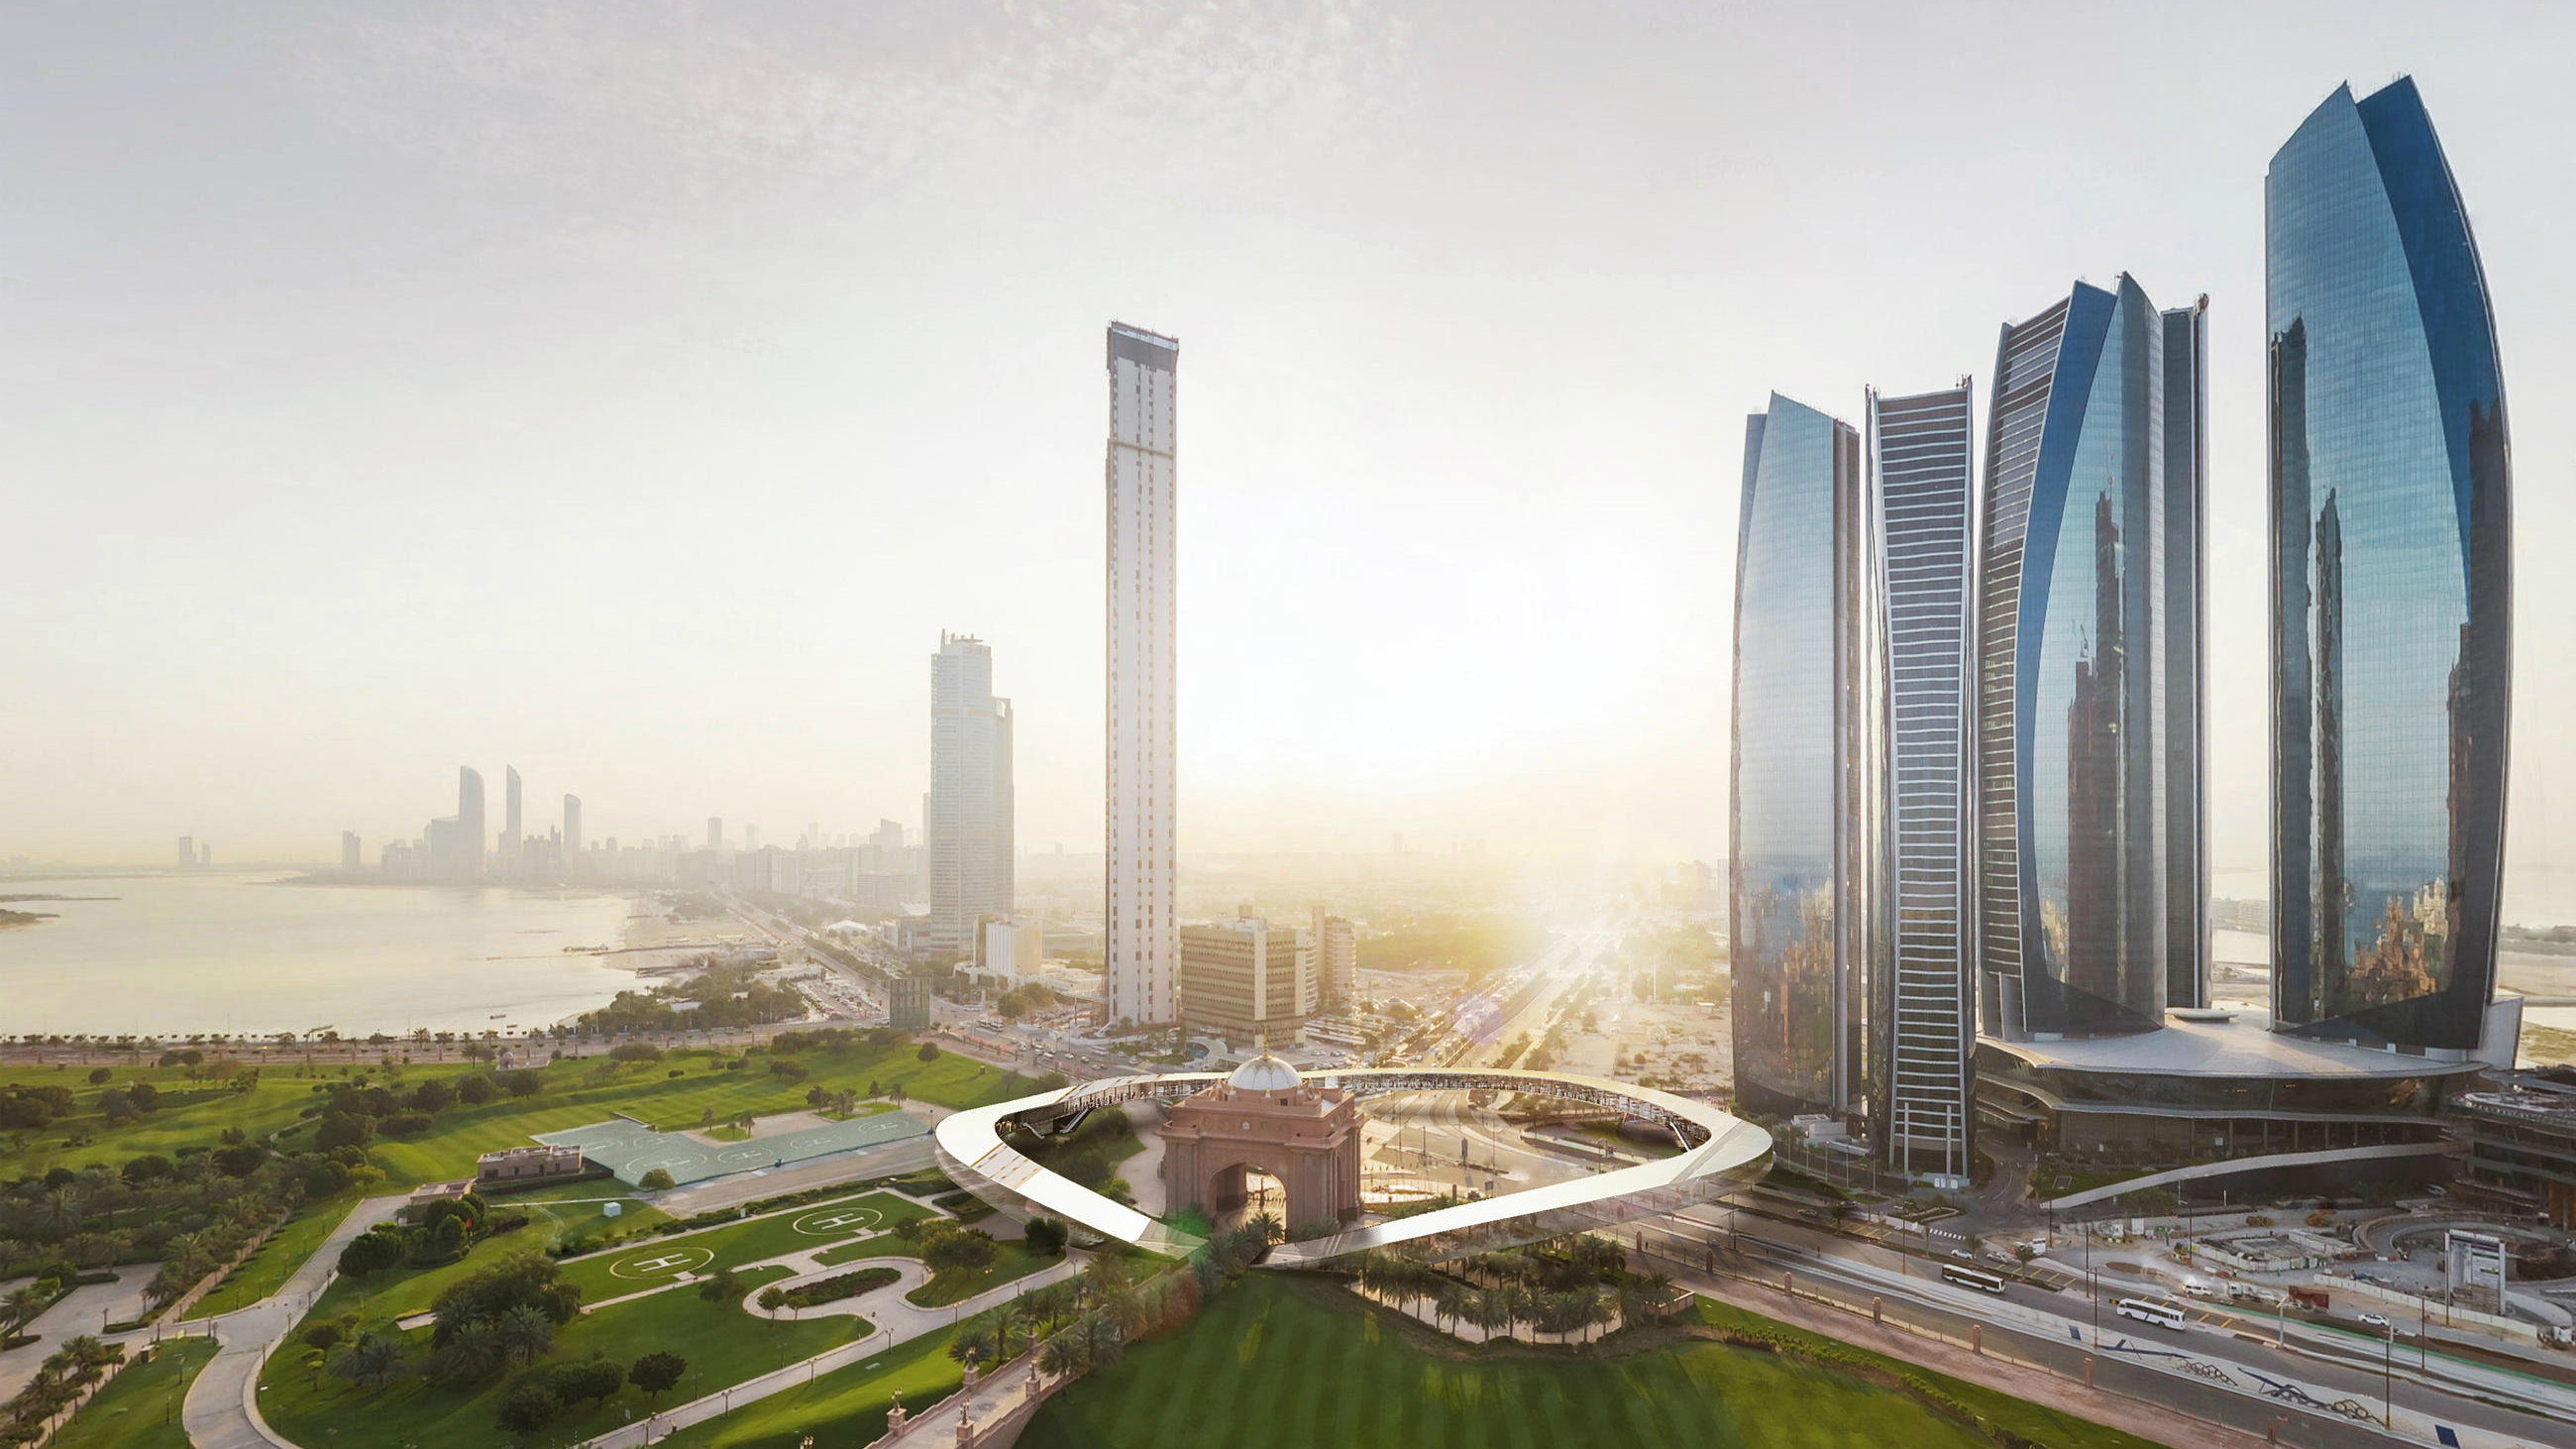 City of the future?